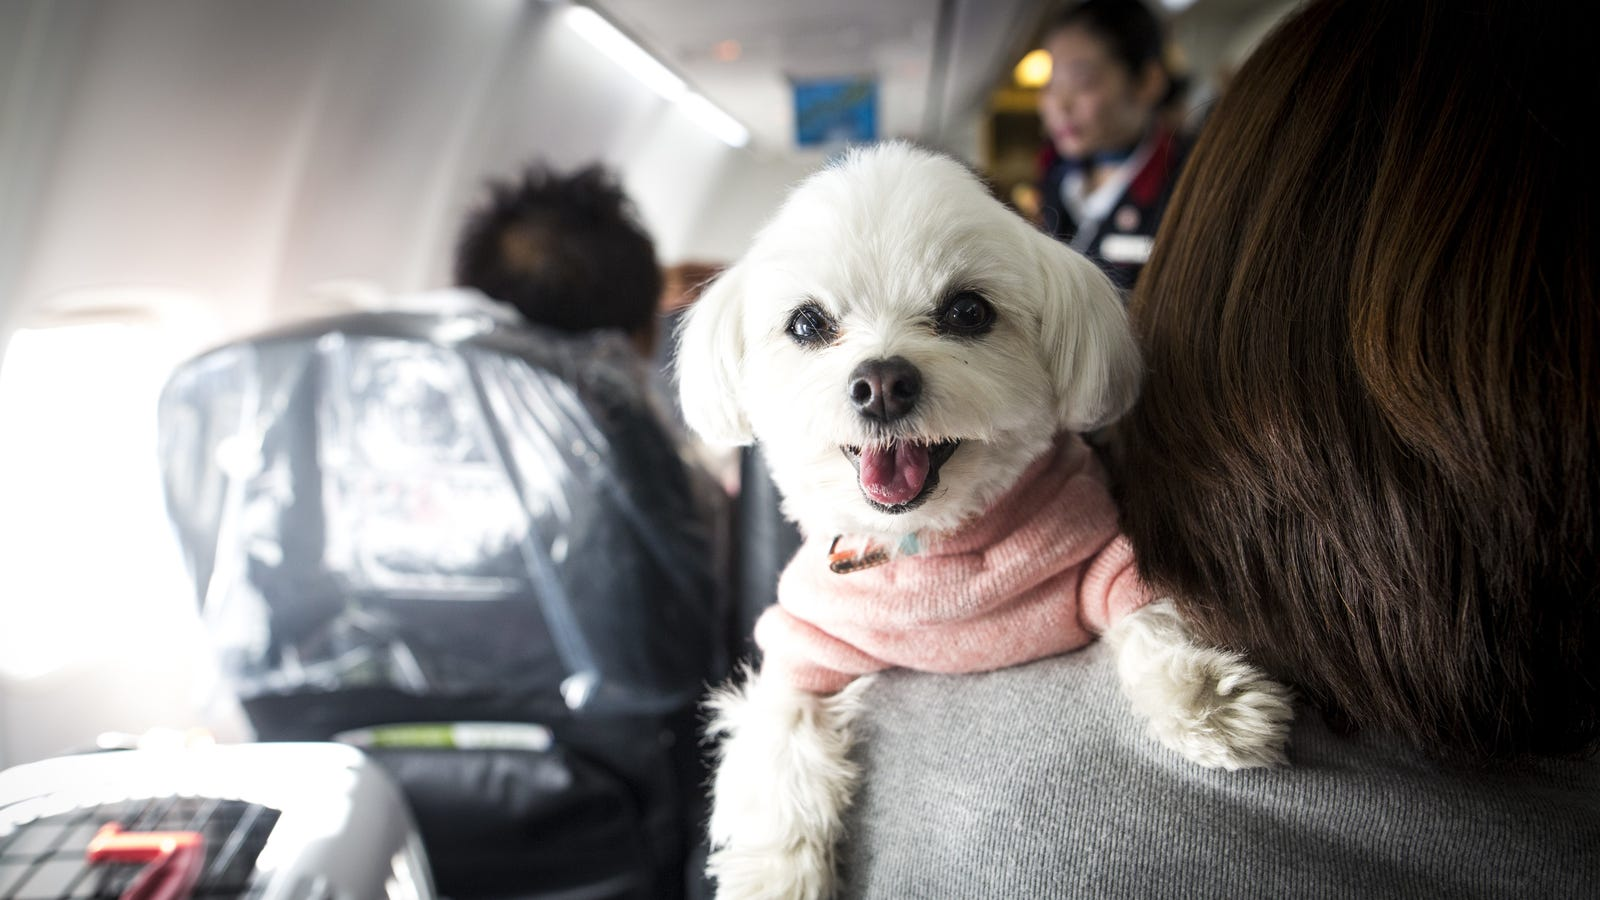 Delta is cracking down on emotional support animals for Delta airlines dogs in cabin